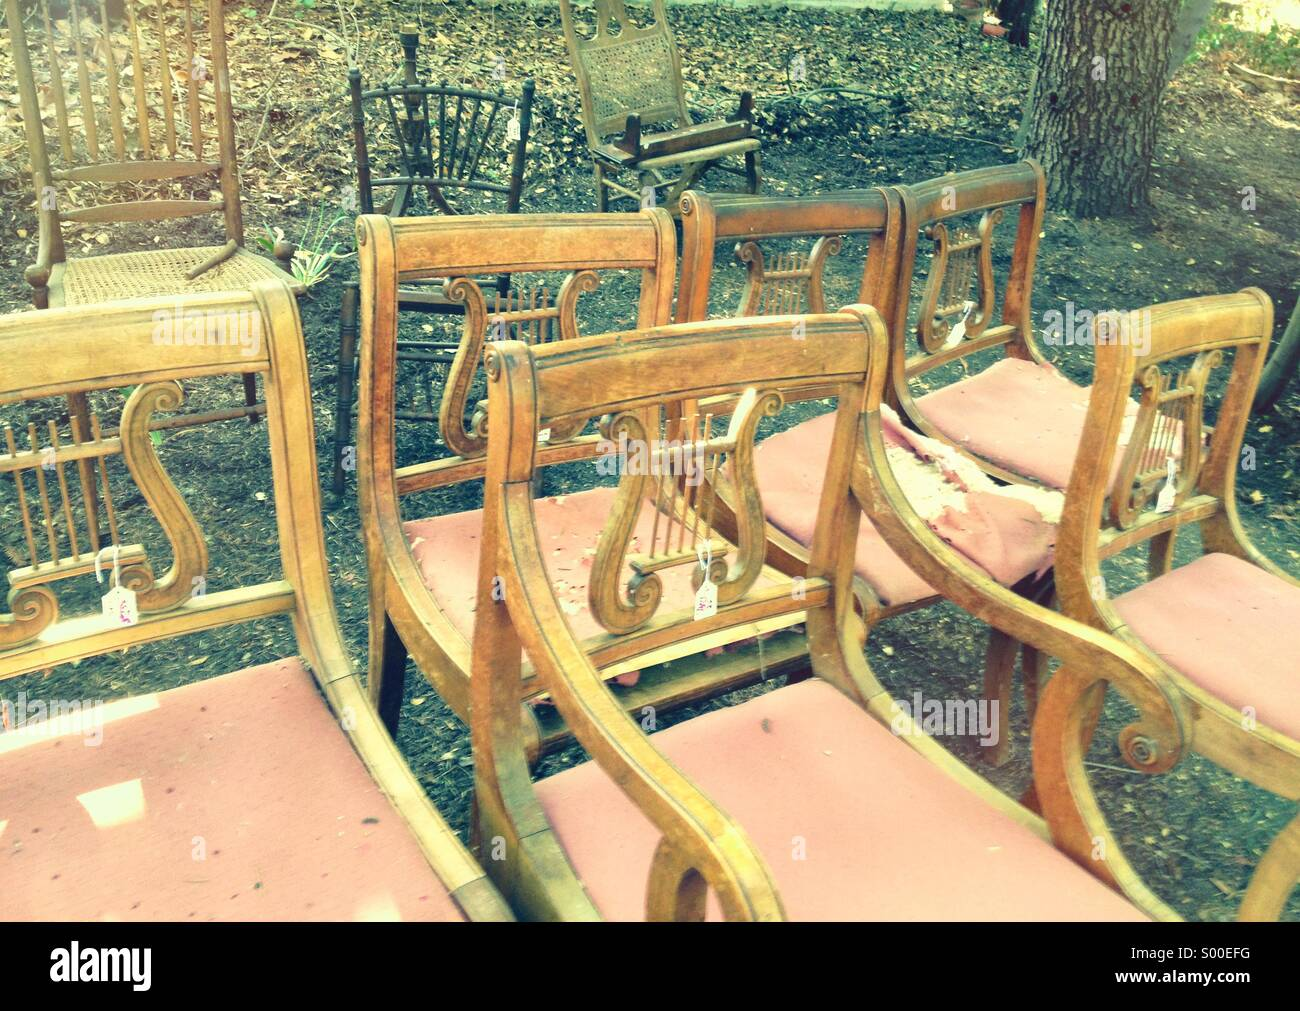 Chairs at an outdoor sale - Stock Image